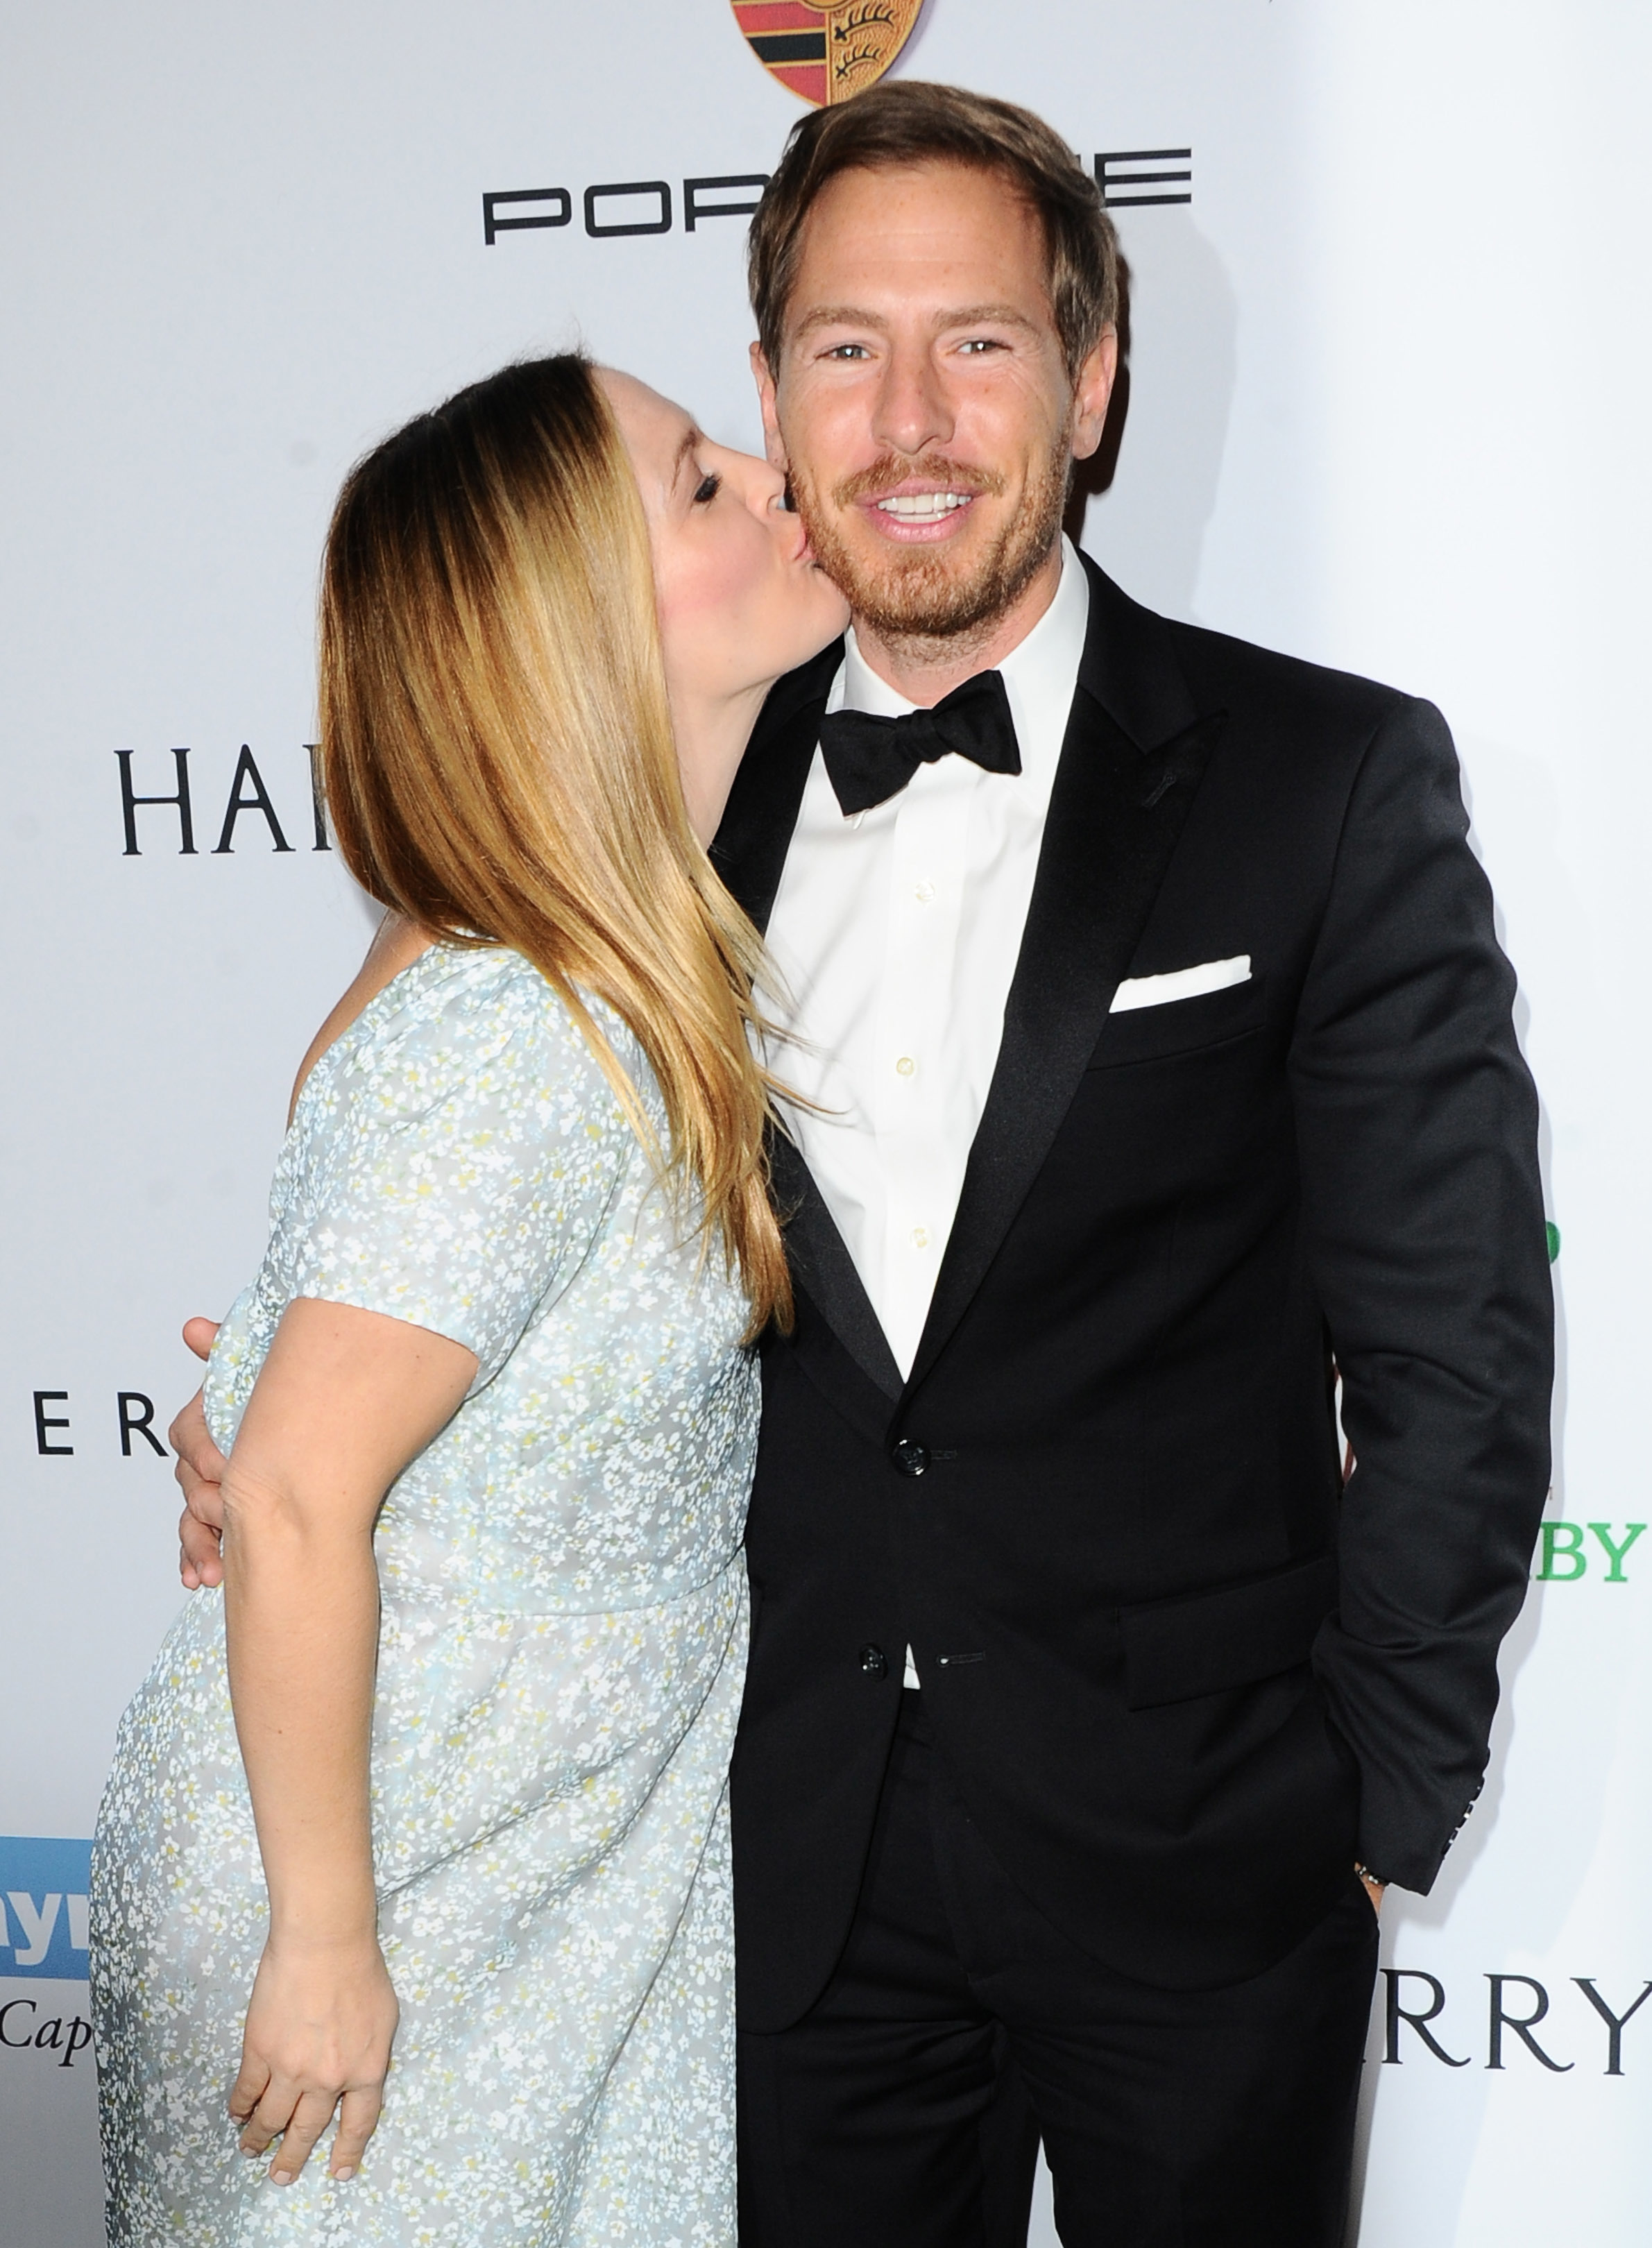 Drew Barrymore is spending the holidays with her ex, Will Kopelman